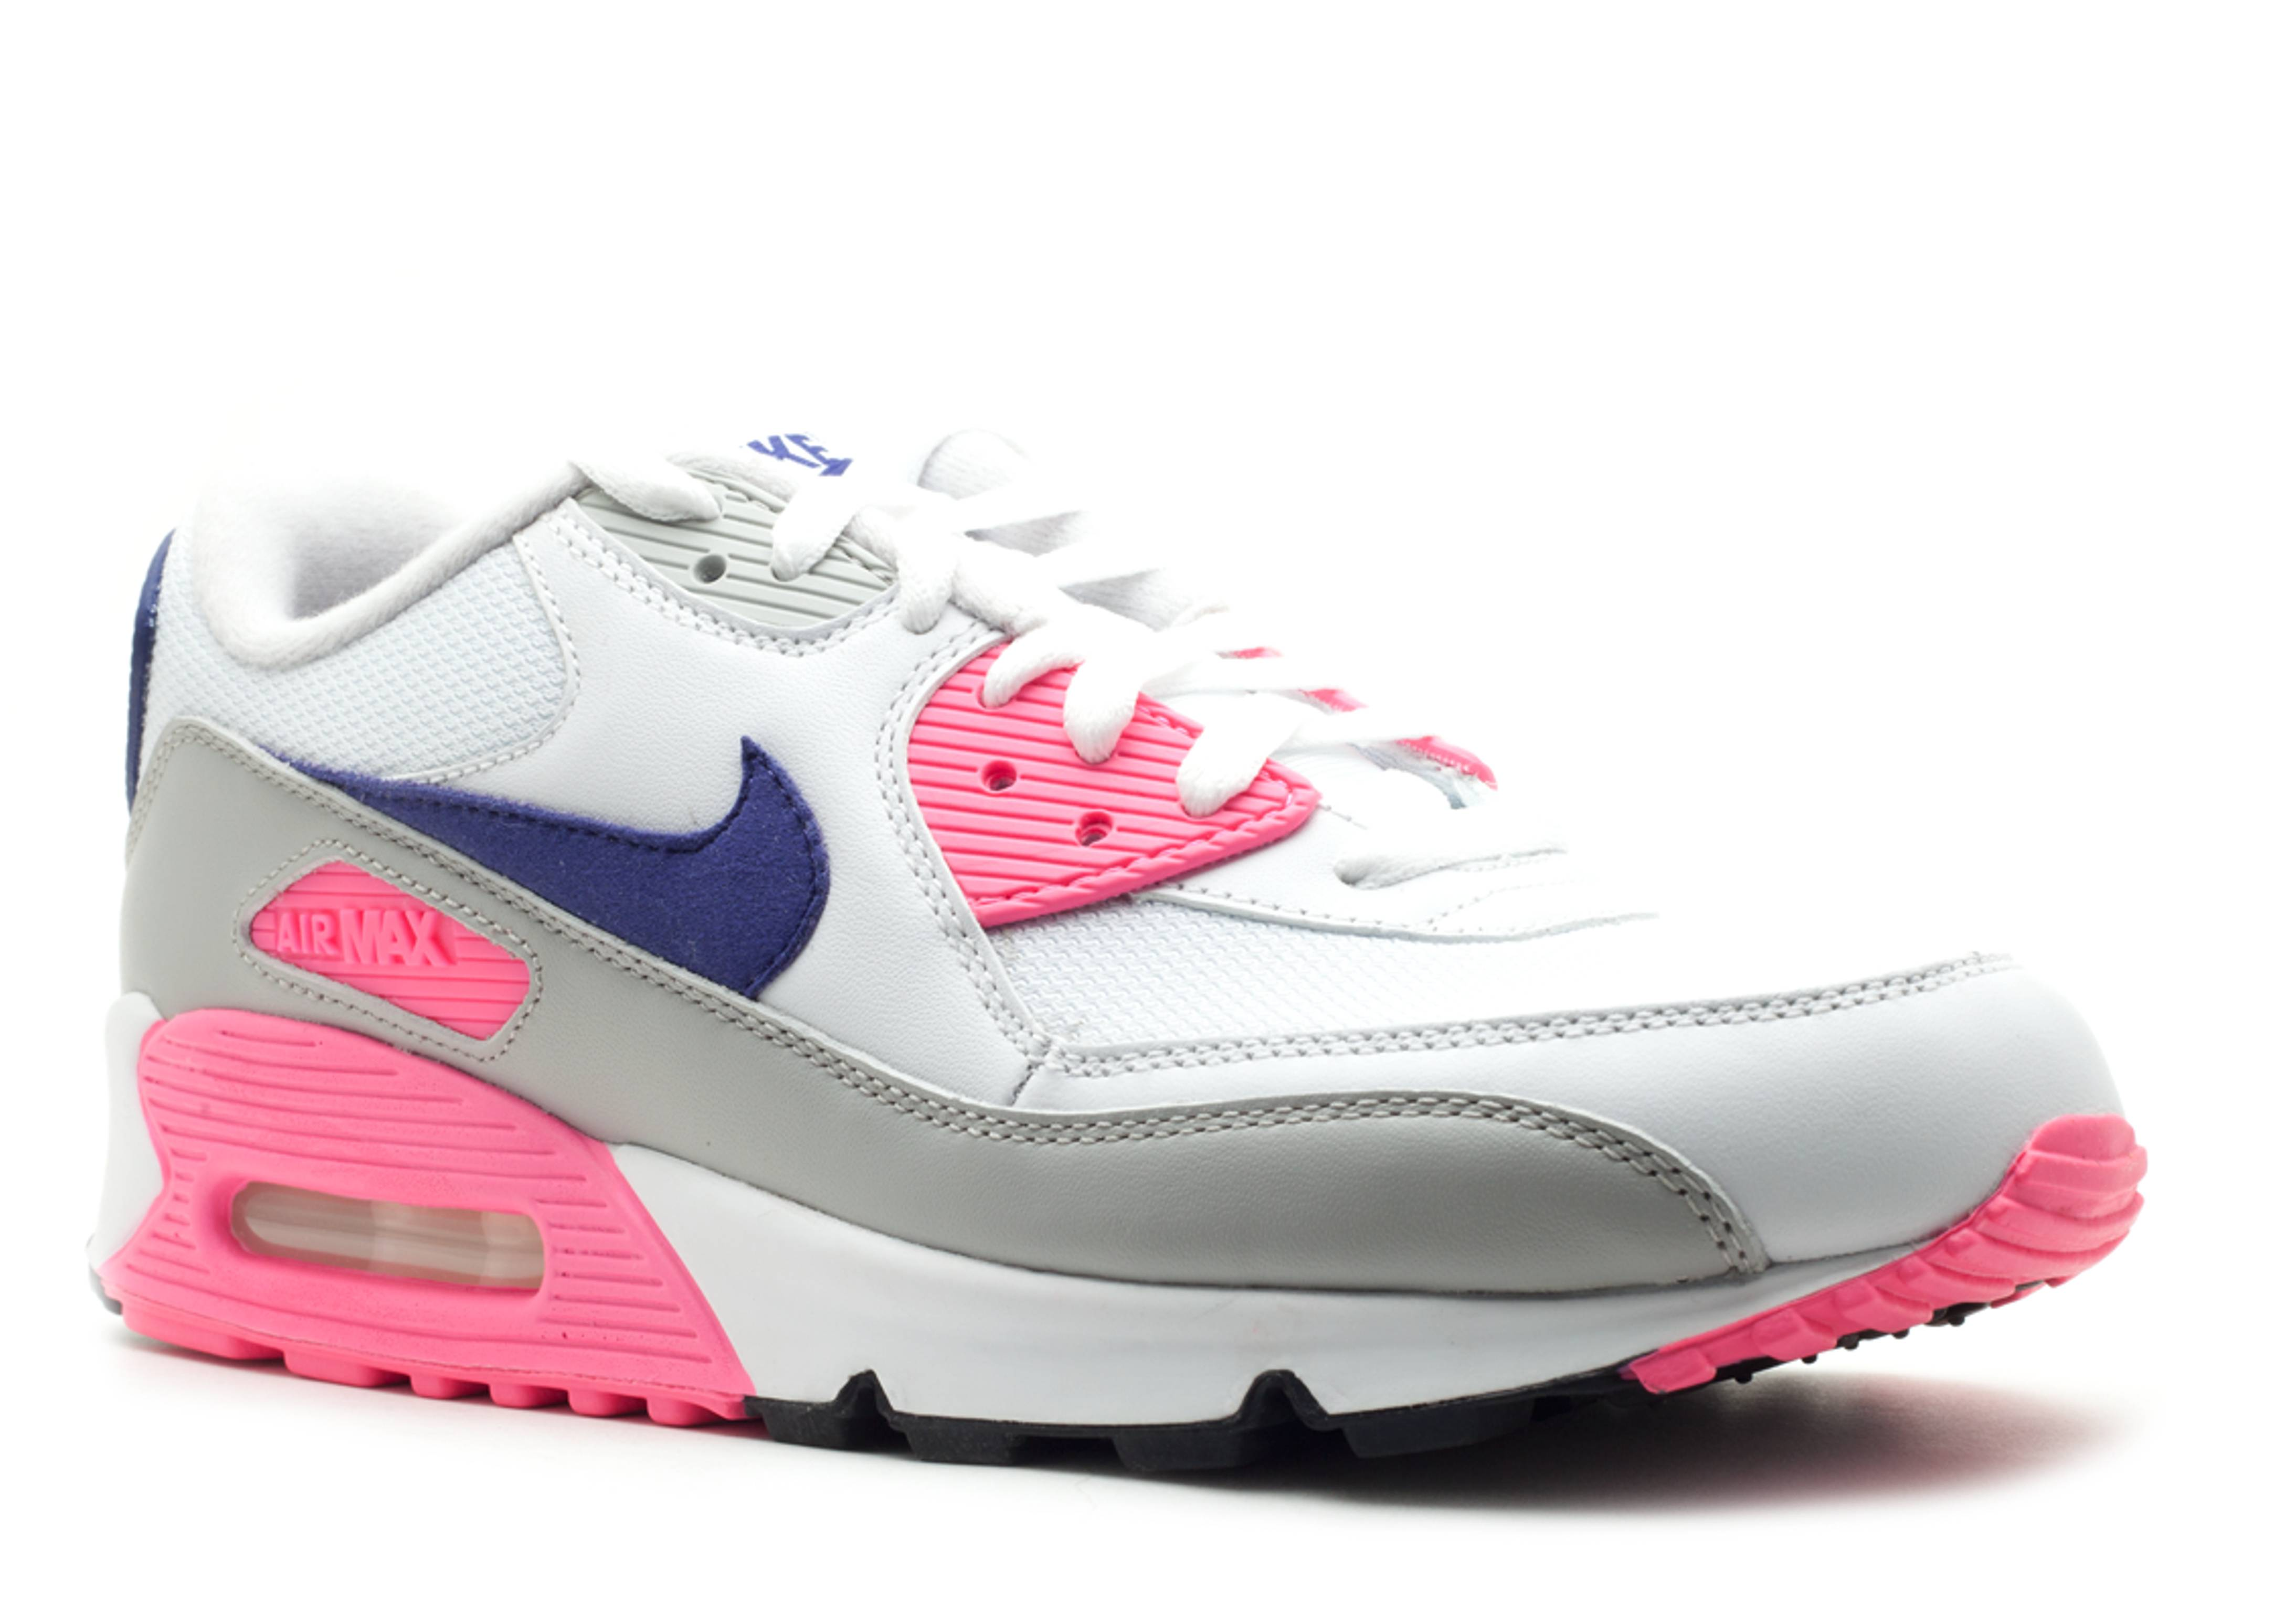 ff375ecc45 W's Air Max 90 - Nike - 325213 105 - white/asian concord-laser pink |  Flight Club